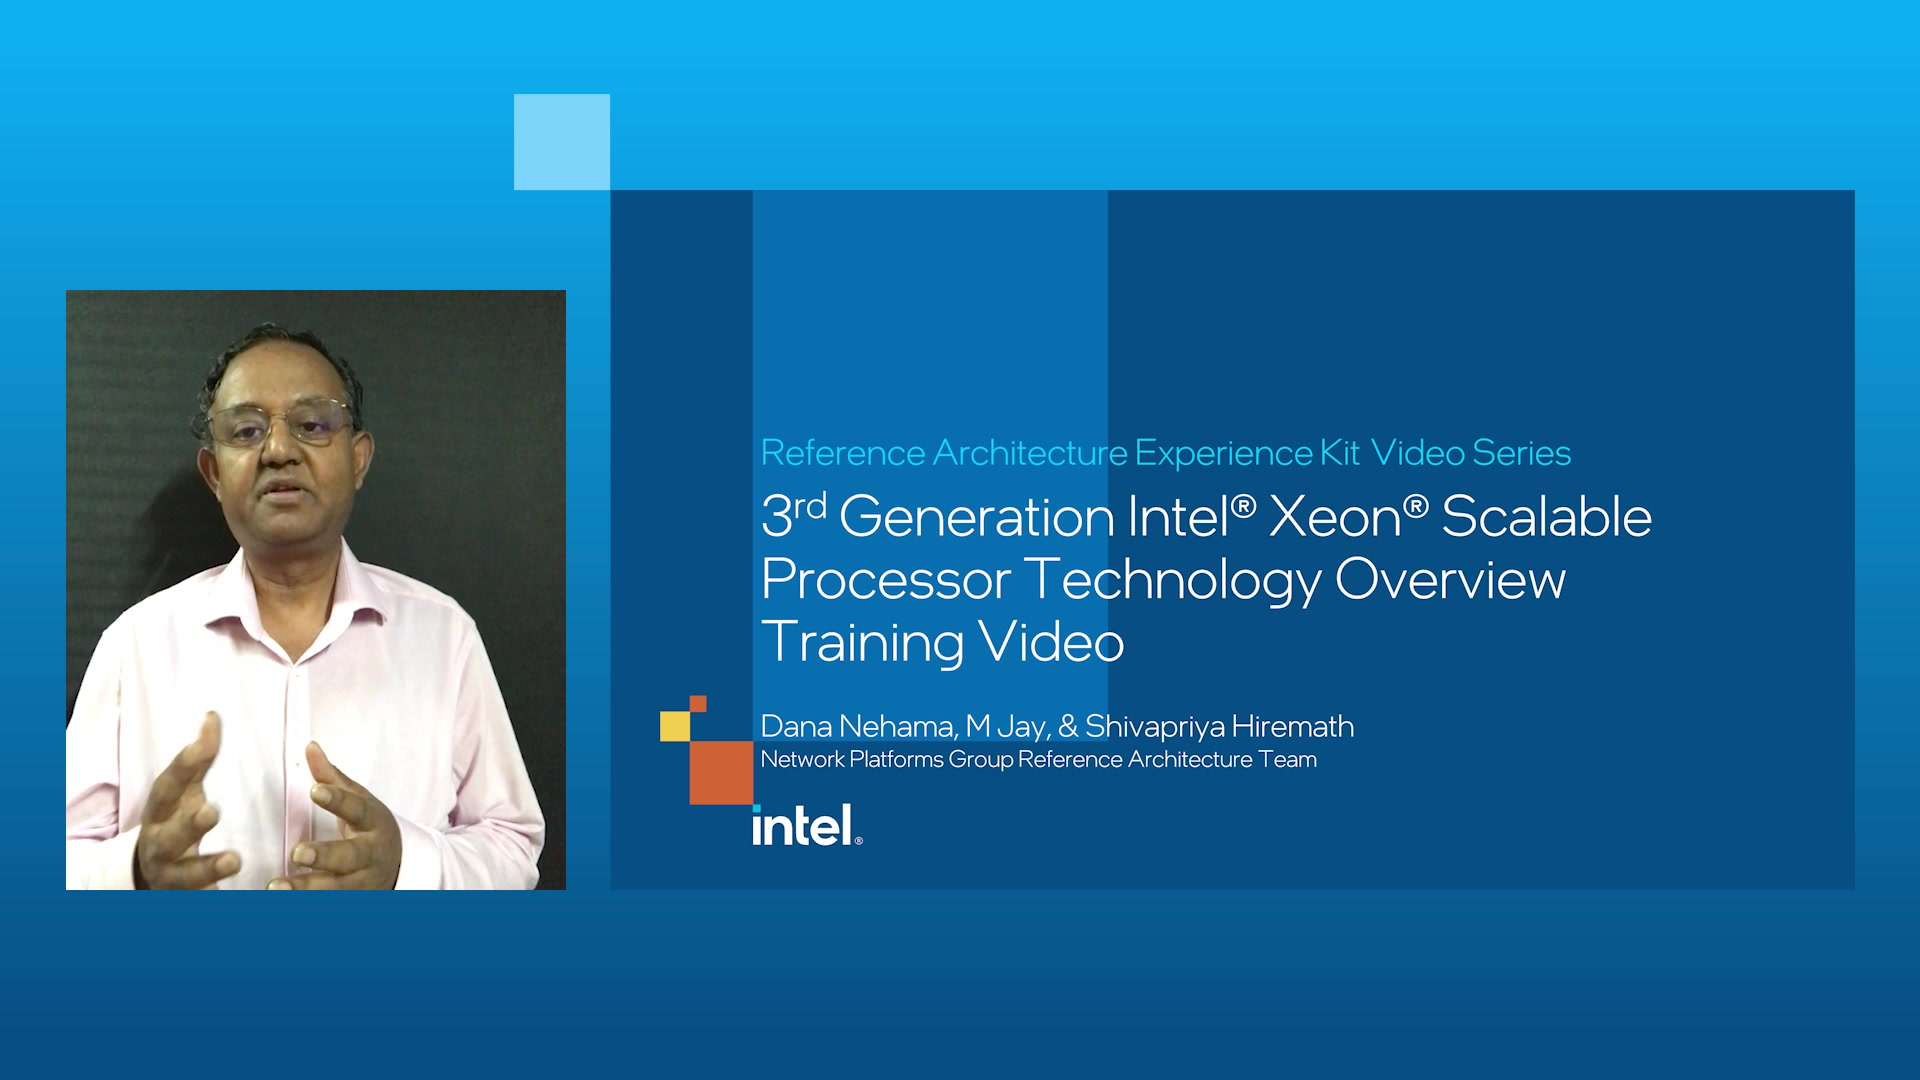 Chapter 1: 3rd Generation Intel® Xeon® Scalable Processor Technology Overview